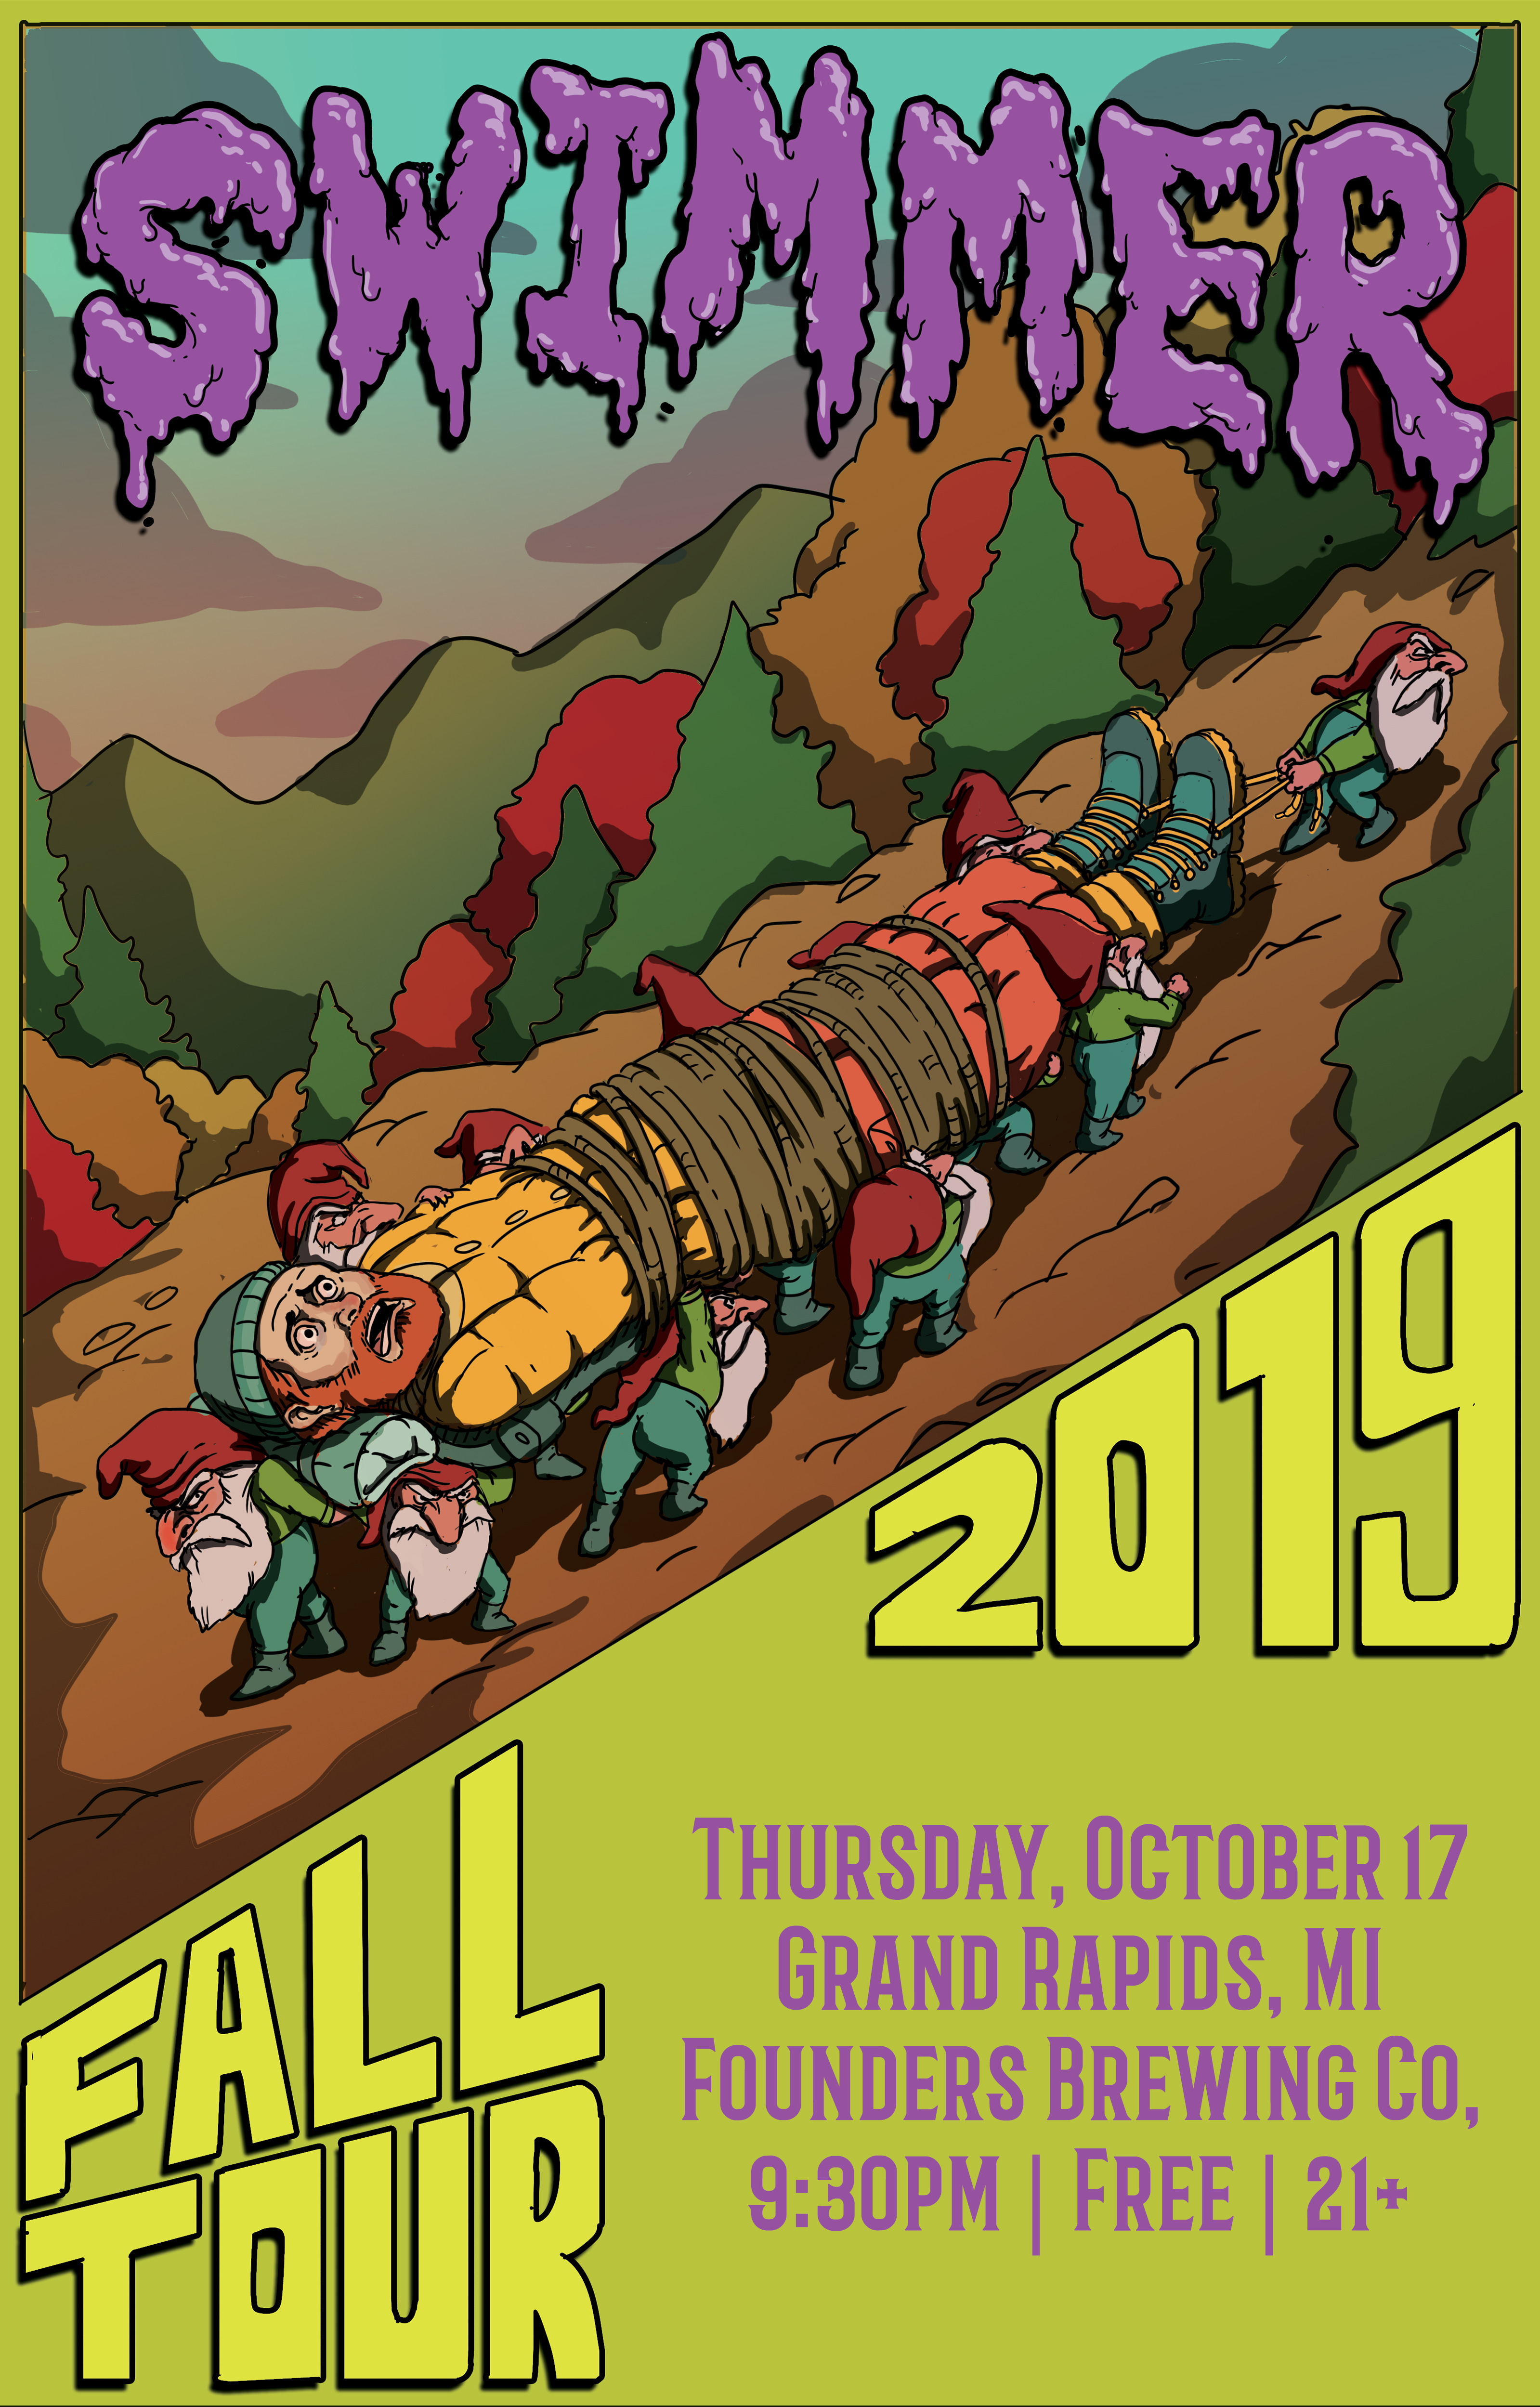 Swimmer 2019 Fall Tour event poster hosted by Founders Brewing Co.